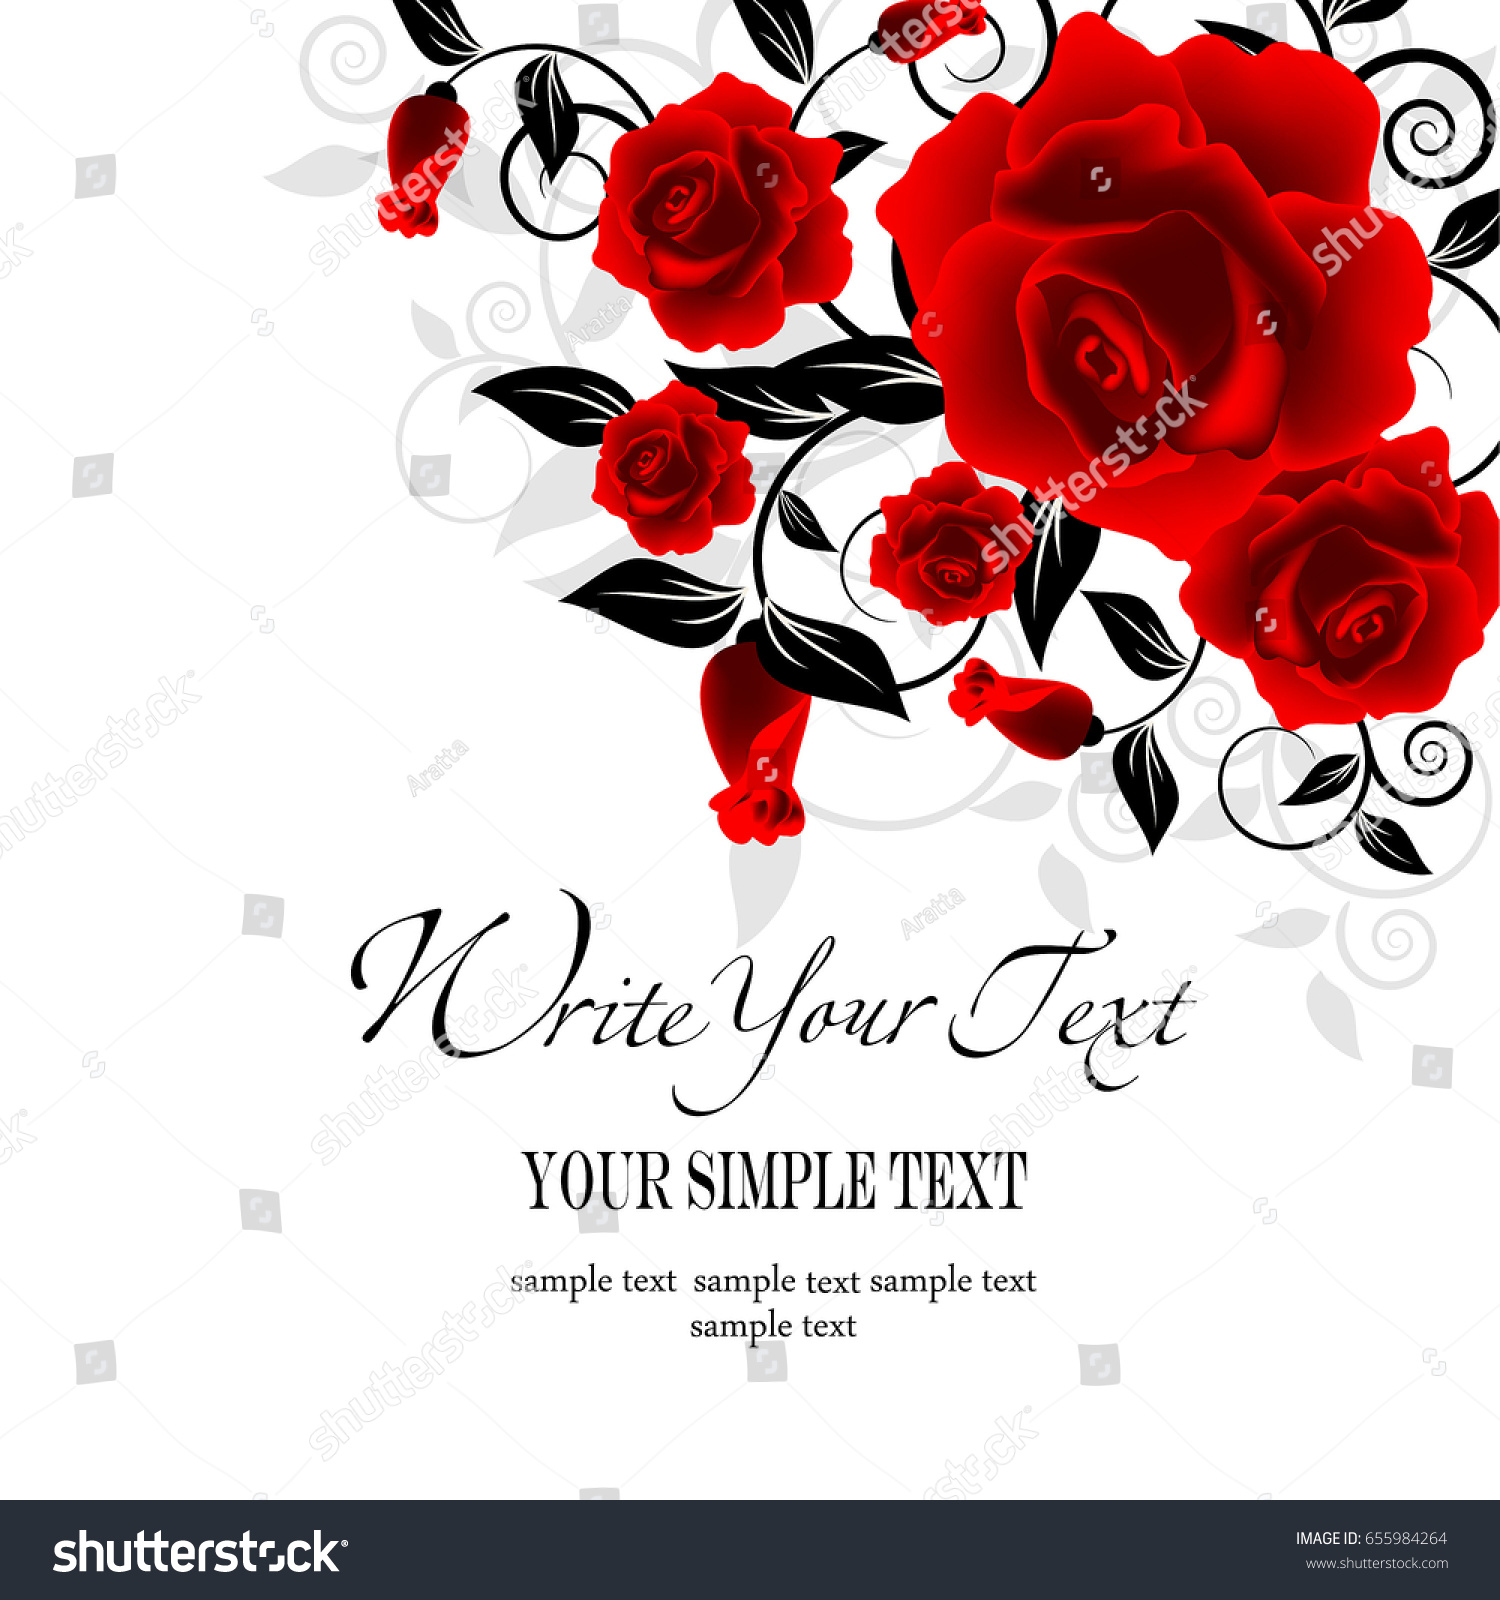 Wedding Card Invitation Abstract Floral Background Stock Photo ...